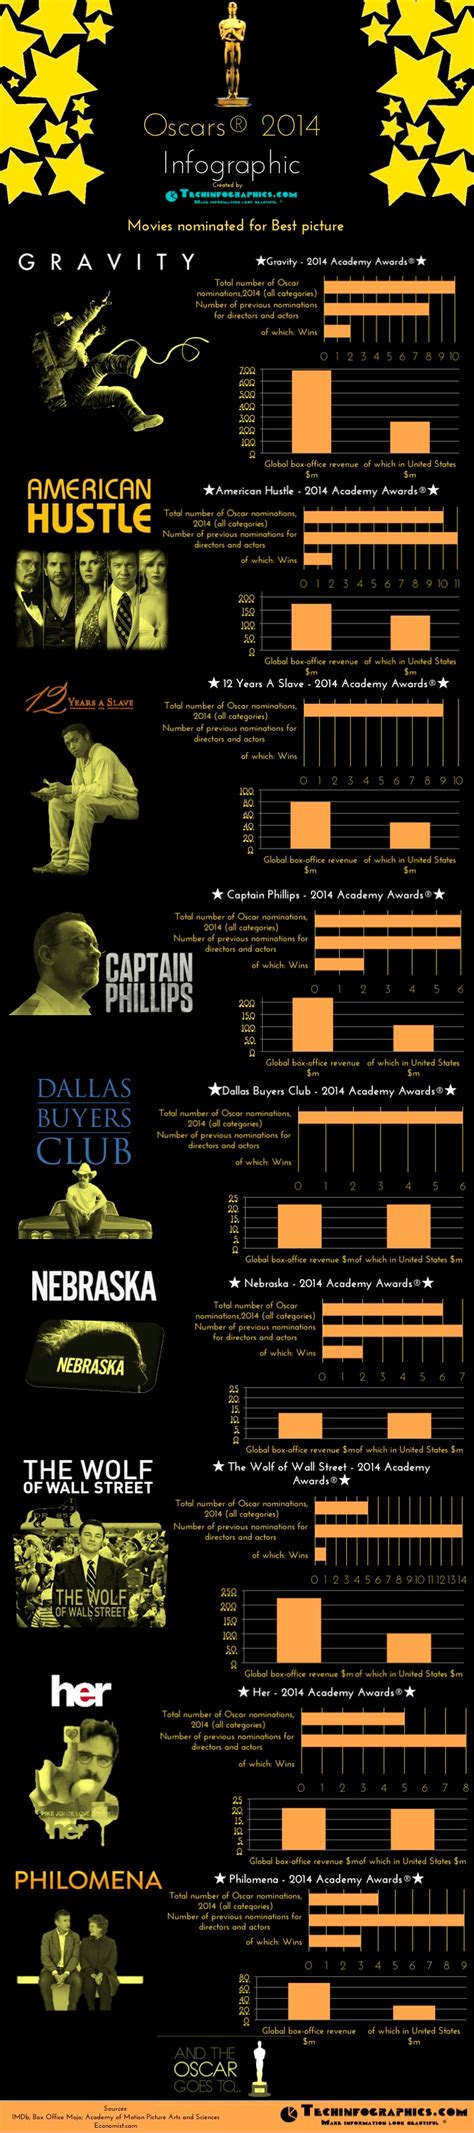 nominated for best picture 2014 oscars infographic 2014 nominated for best picture